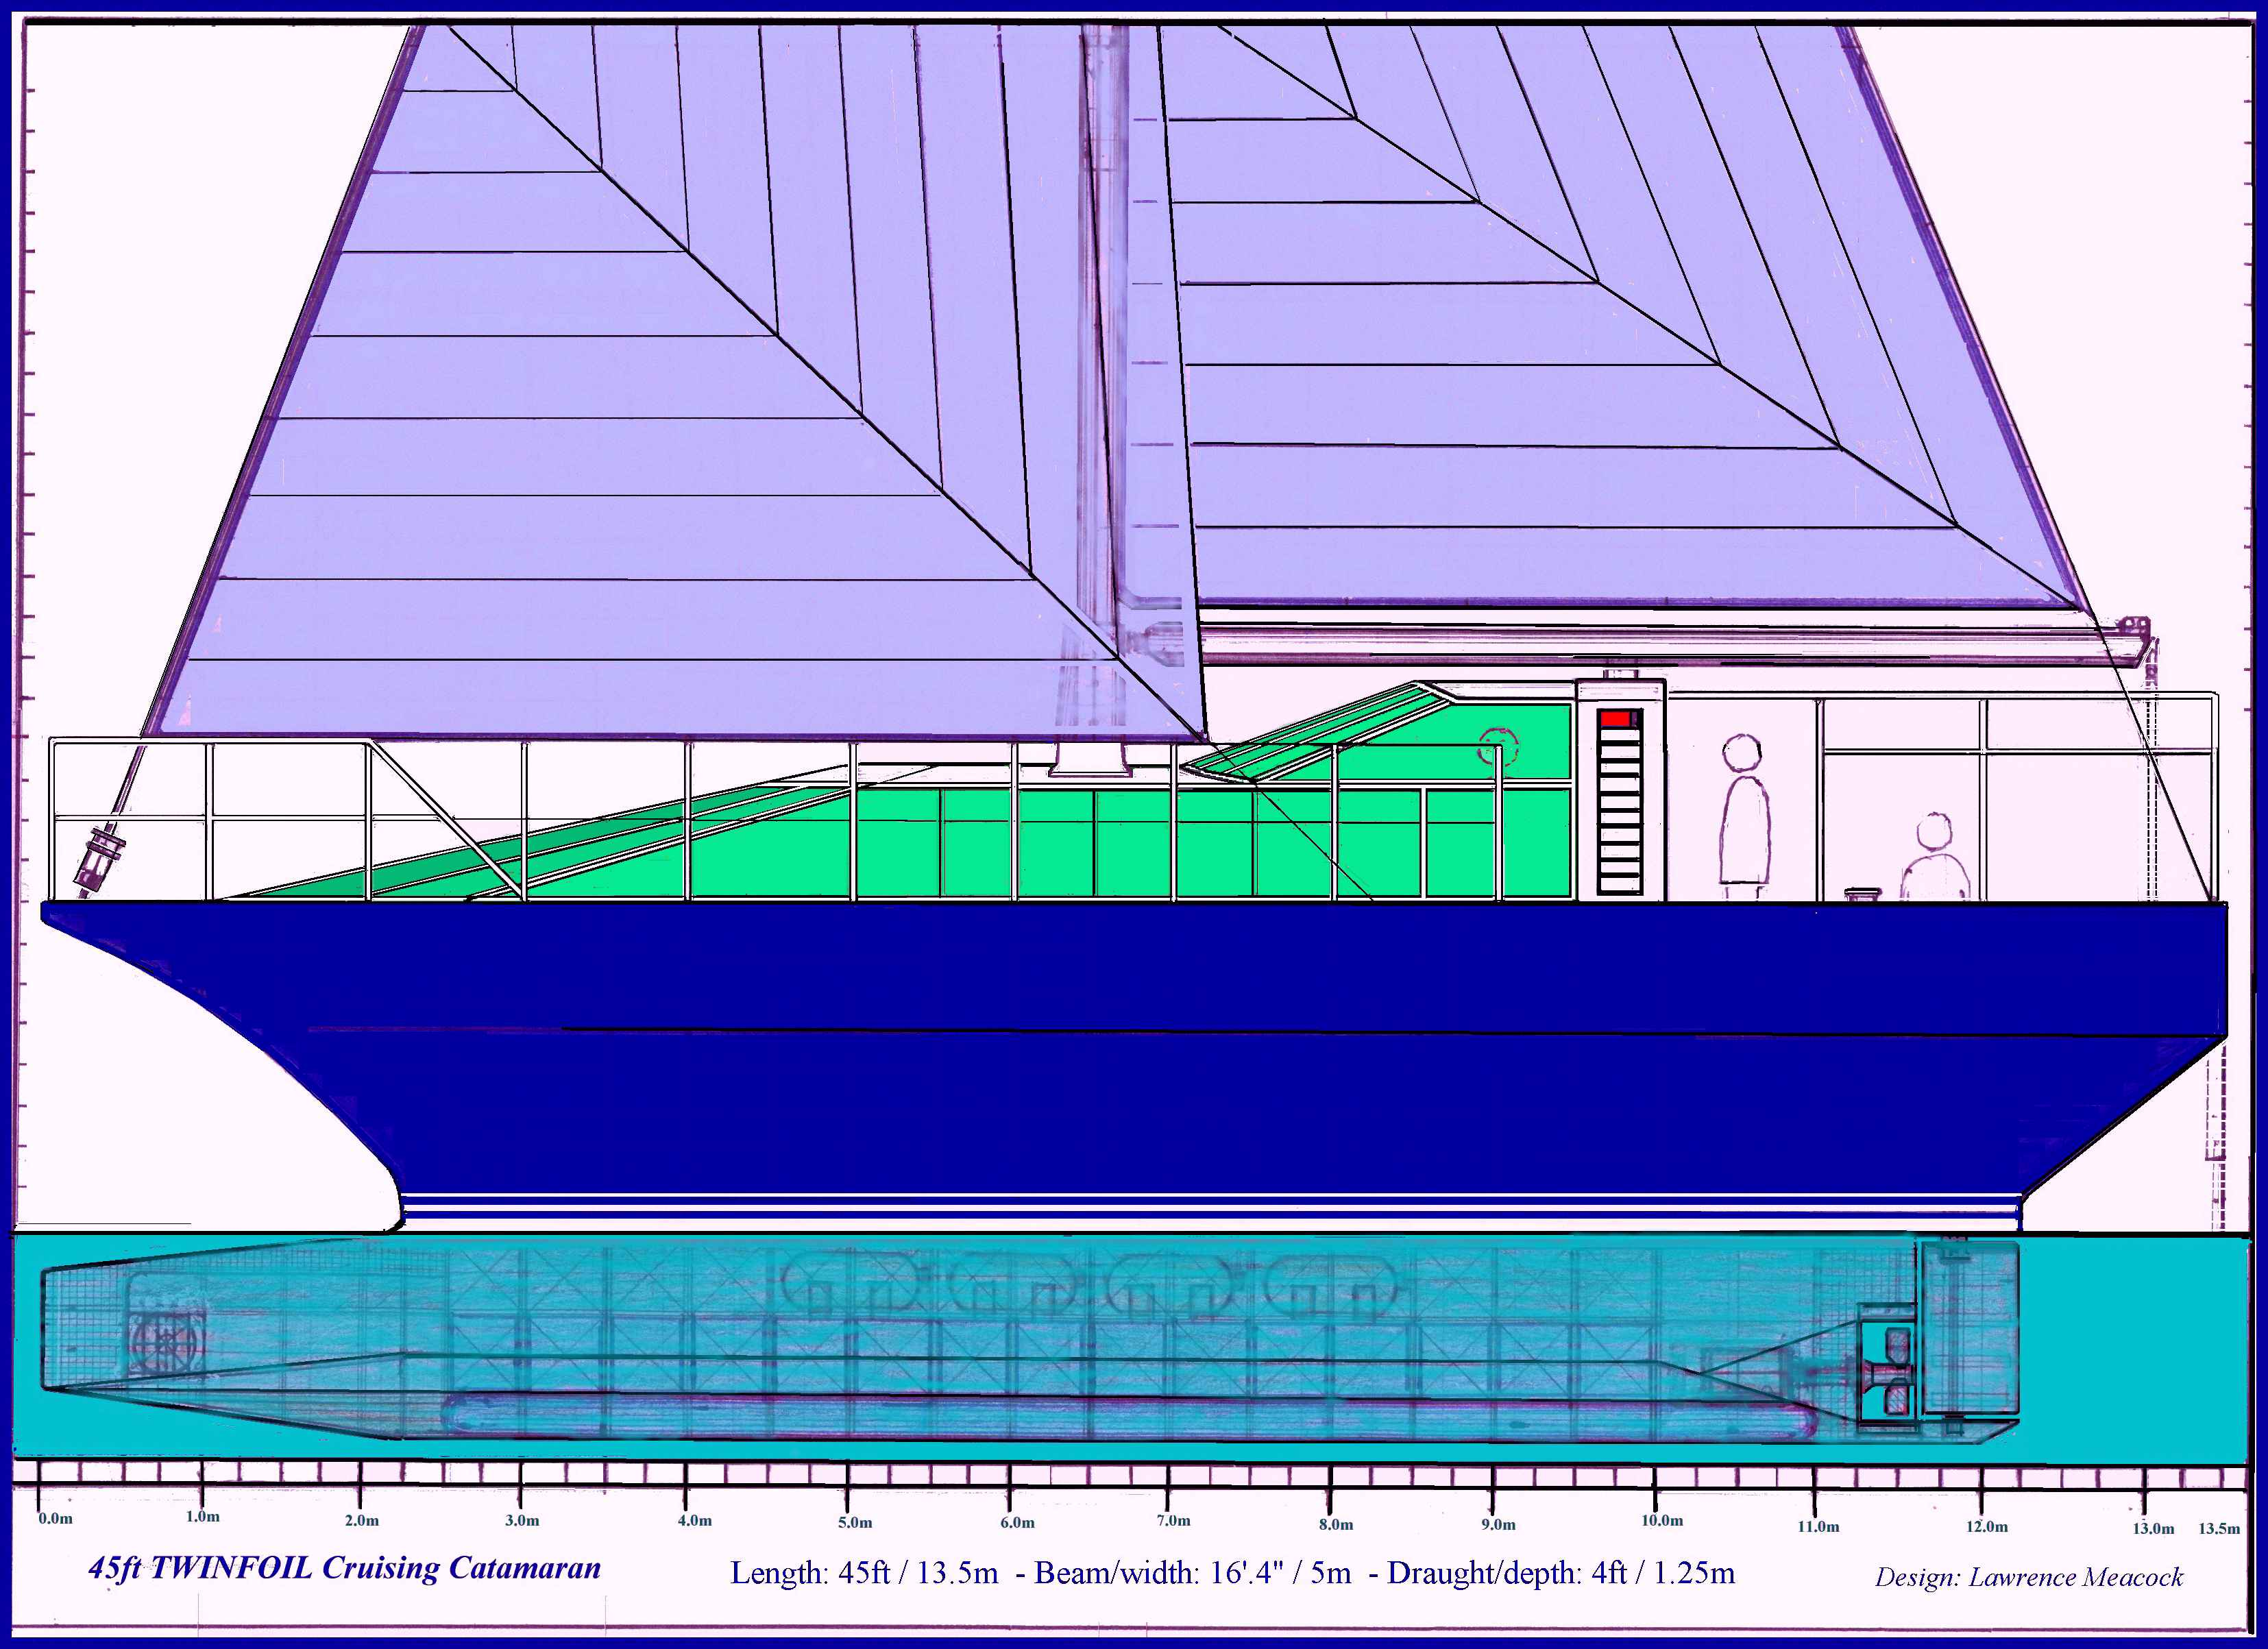 45ft TWINFOIL Cruising Catamaran side view